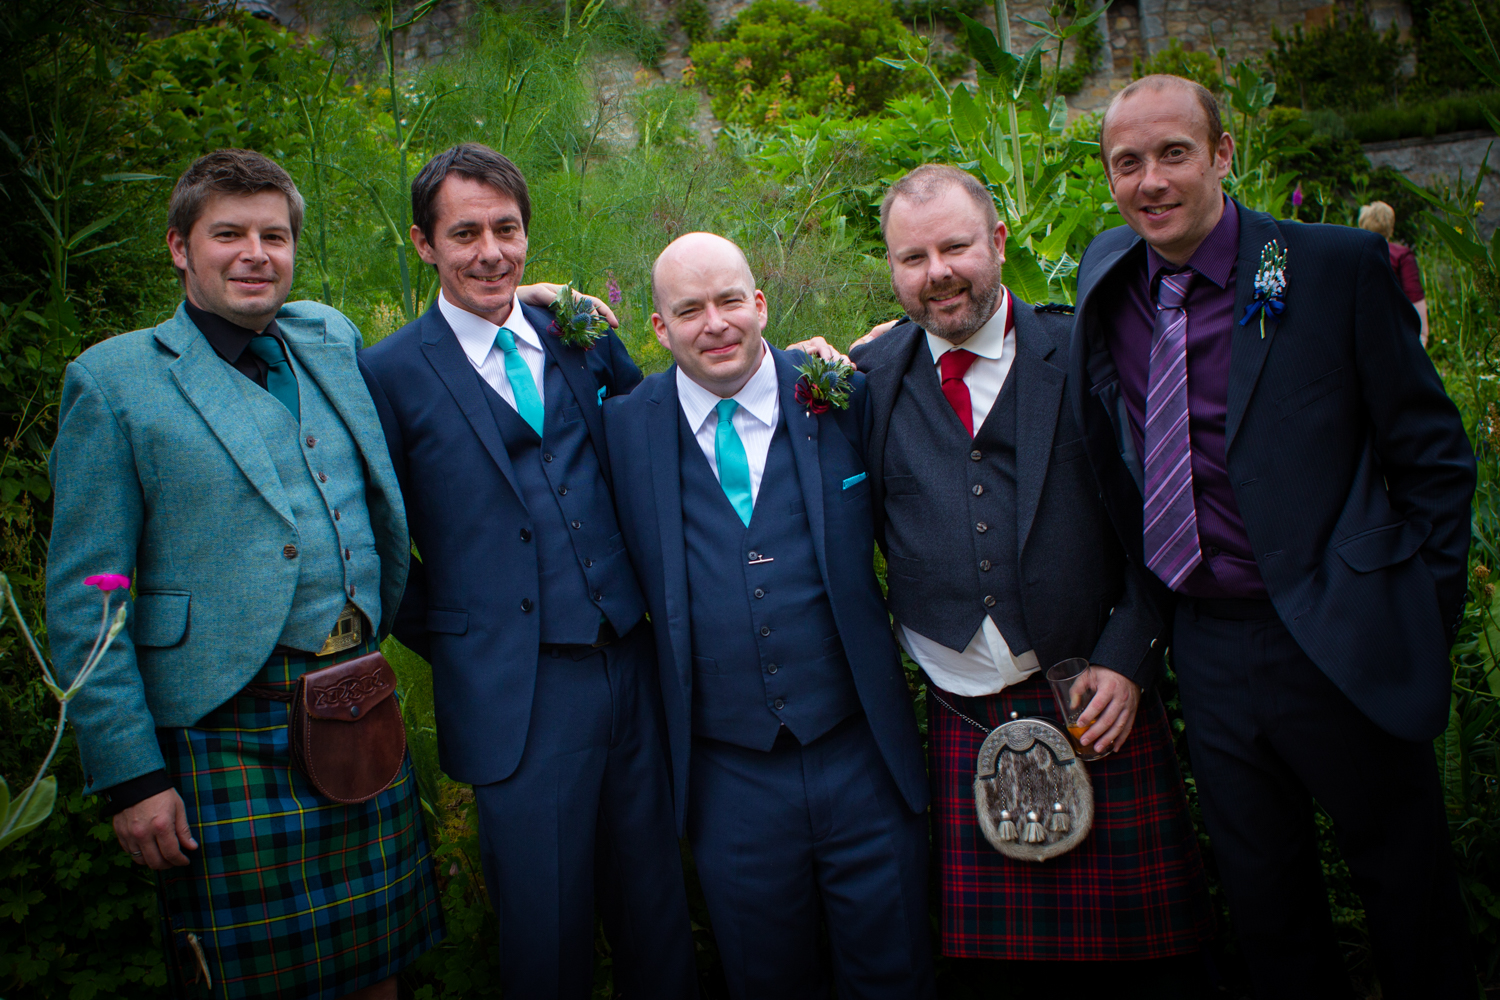 Clare and Charles wedding day blog-63.jpg